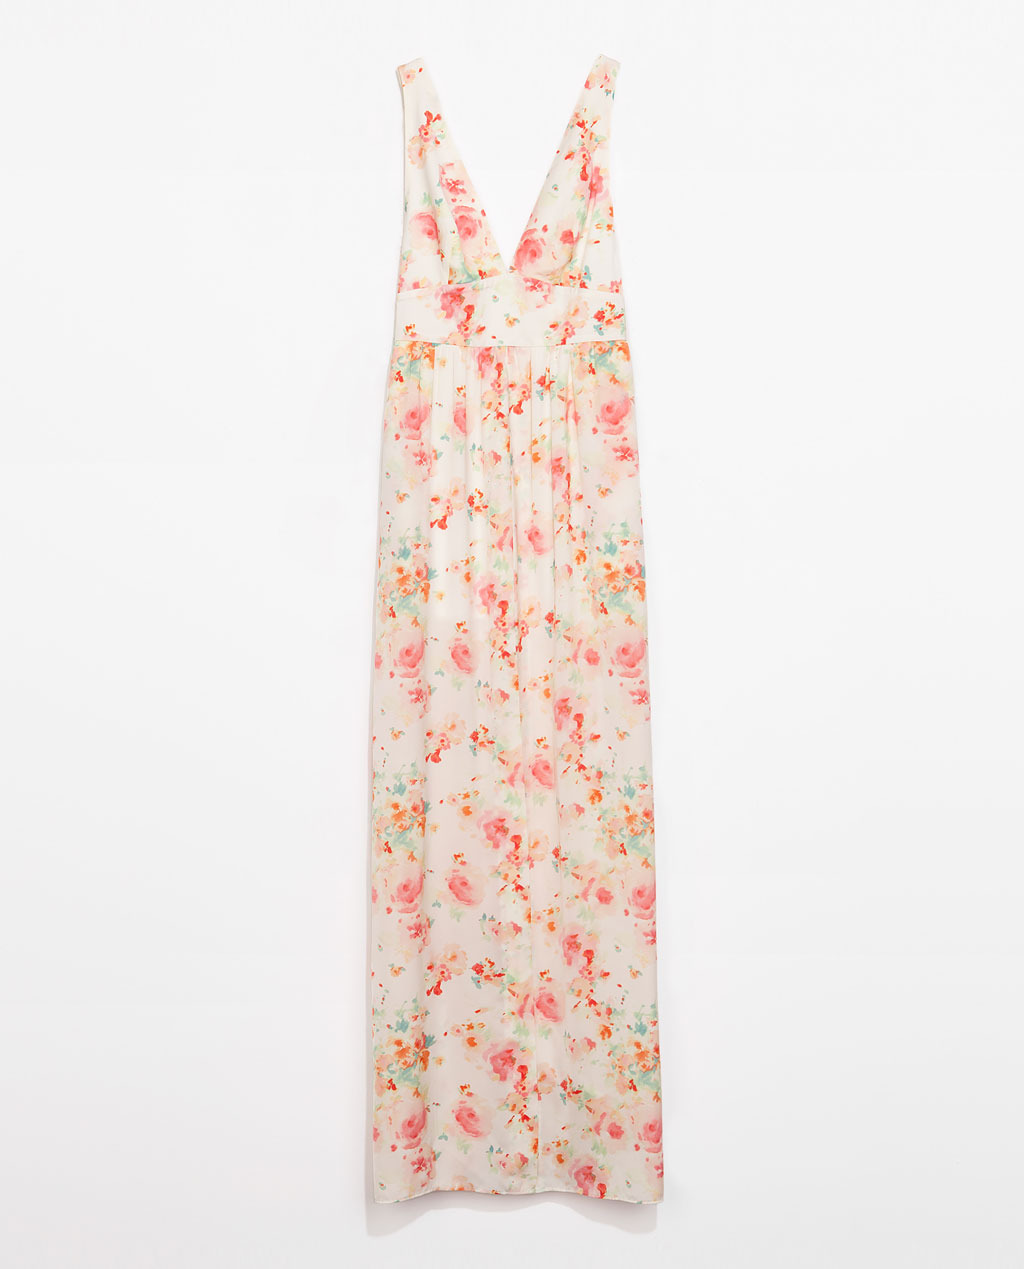 Long Dress With V Neckline - neckline: plunge; fit: empire; sleeve style: sleeveless; style: maxi dress; back detail: back revealing; predominant colour: ivory/cream; secondary colour: pink; occasions: casual, holiday; length: floor length; fibres: polyester/polyamide - 100%; sleeve length: sleeveless; texture group: sheer fabrics/chiffon/organza etc.; pattern type: fabric; pattern size: standard; pattern: florals; trends: furious florals; season: s/s 2014